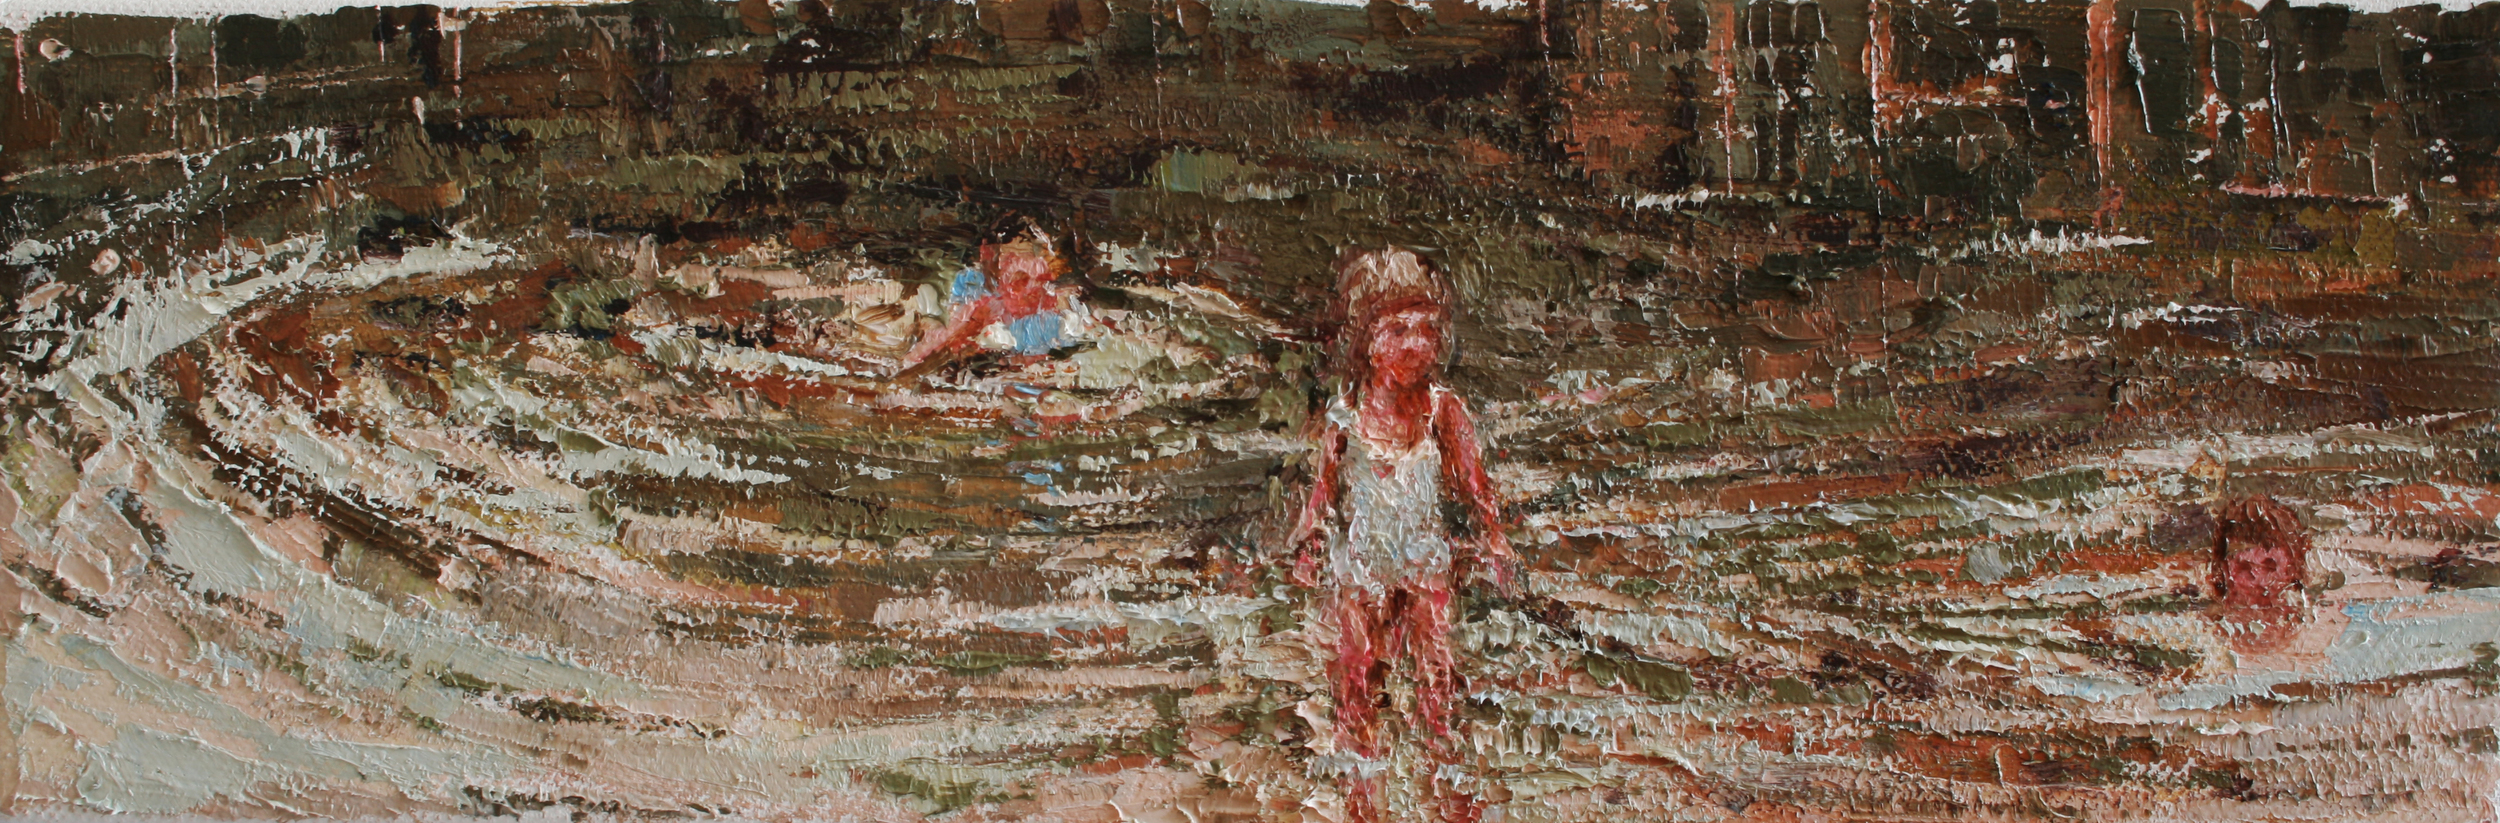 """Water Ripples, oil on canvas, 4"""" x 12"""", 2010, Private Collection"""